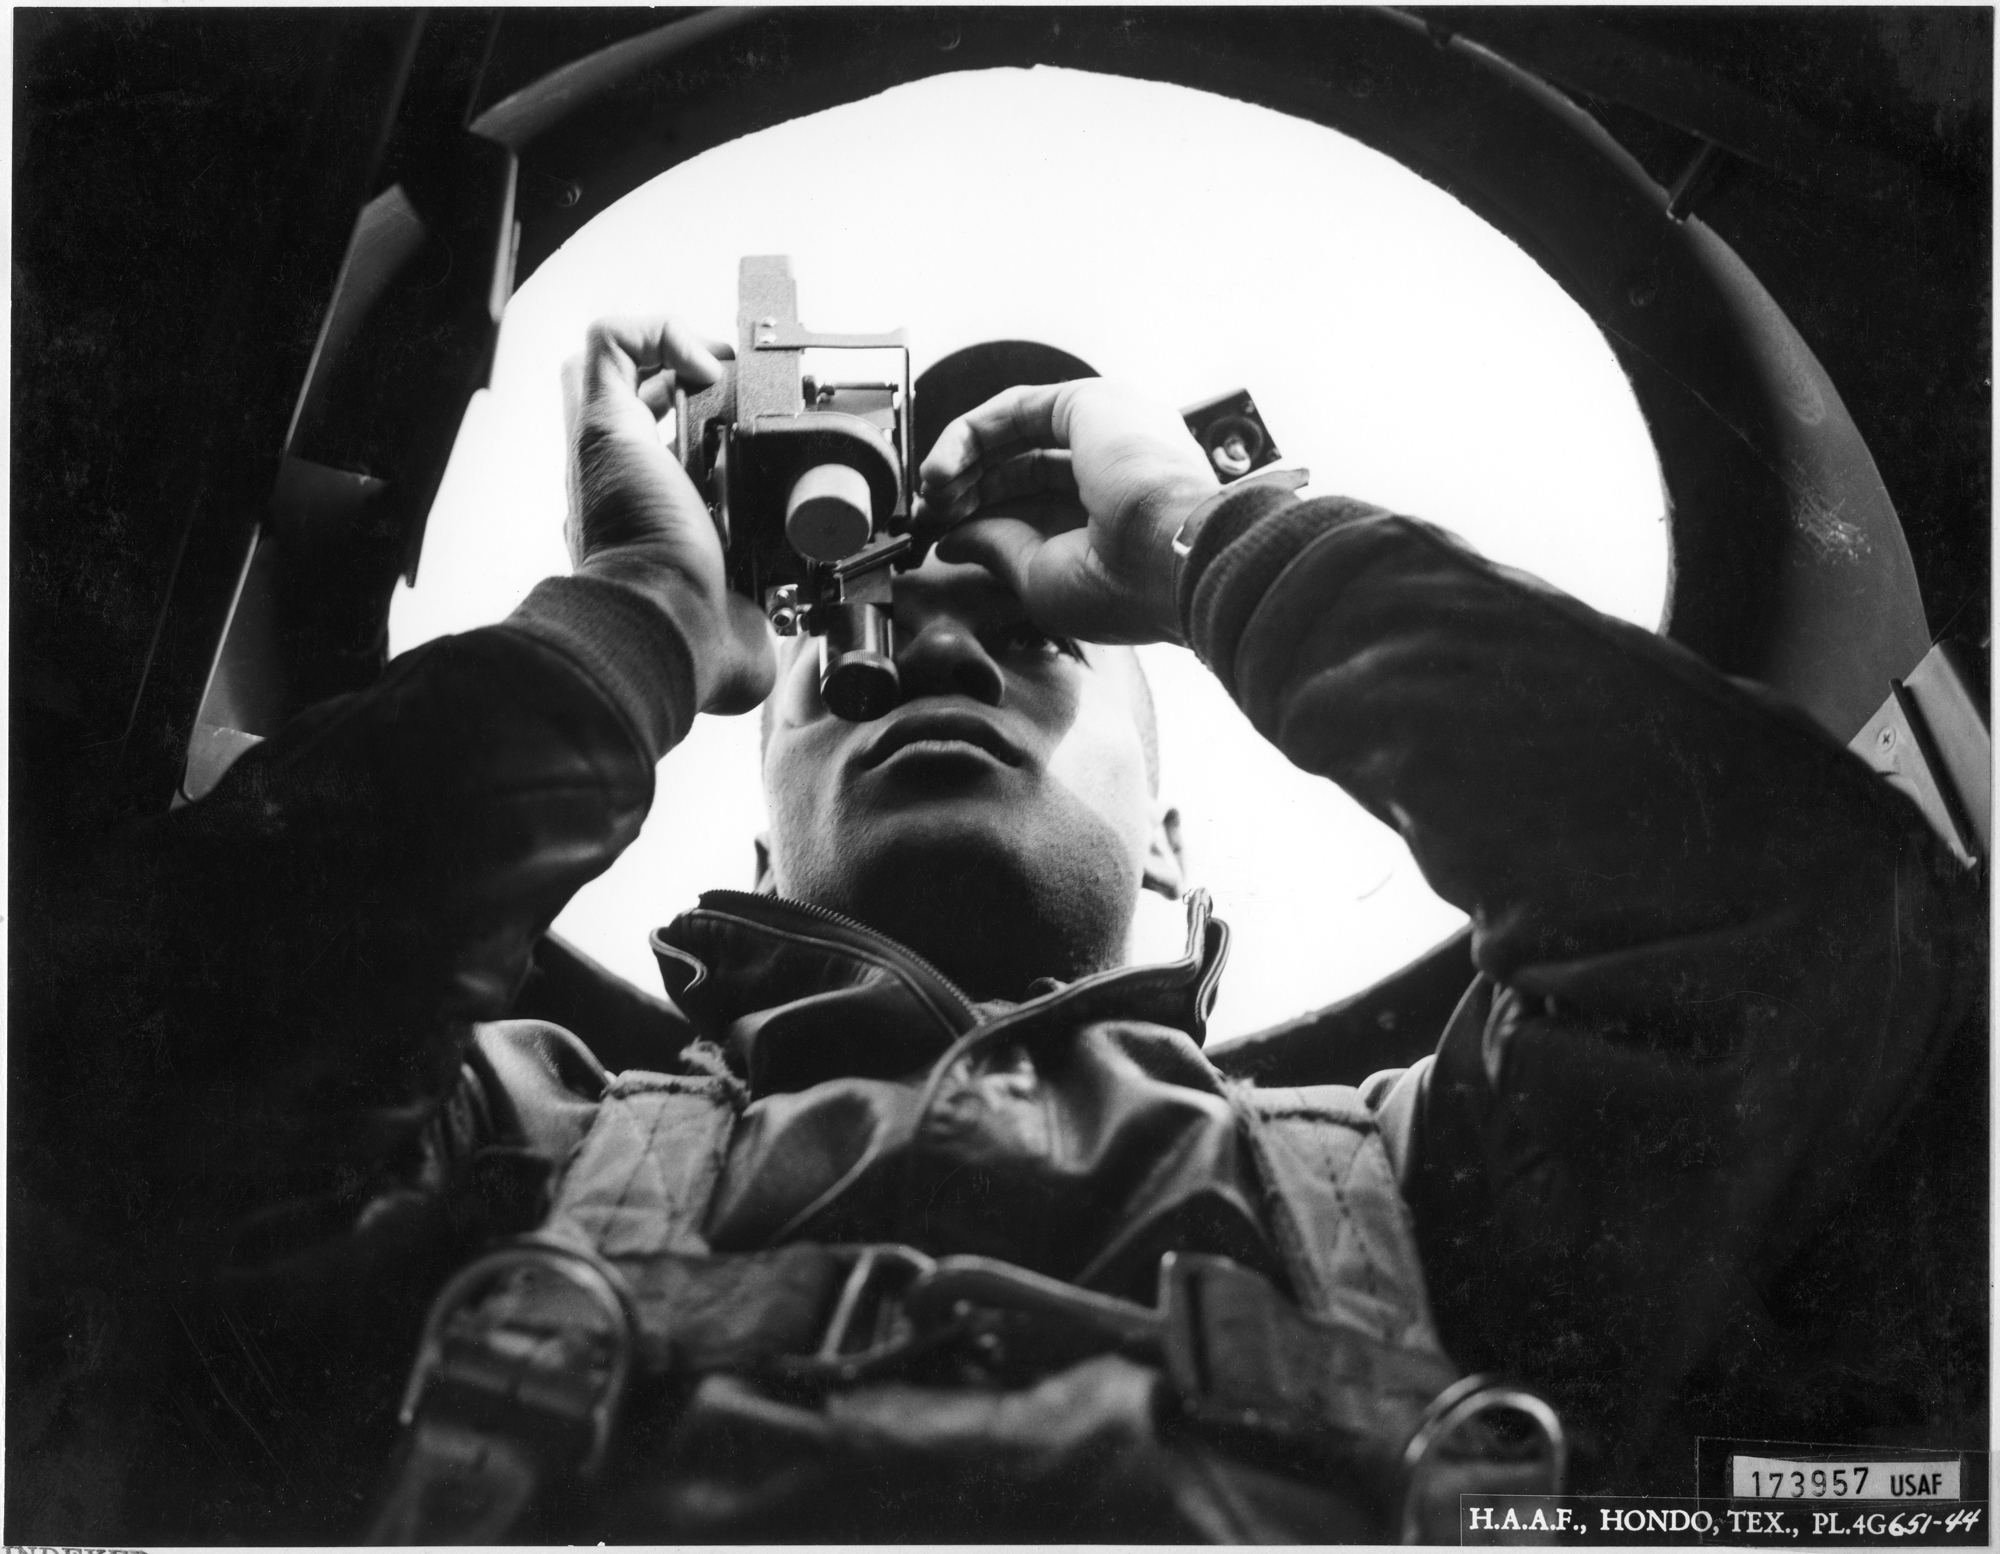 Tuskegee Navigation Cadet with Sextant